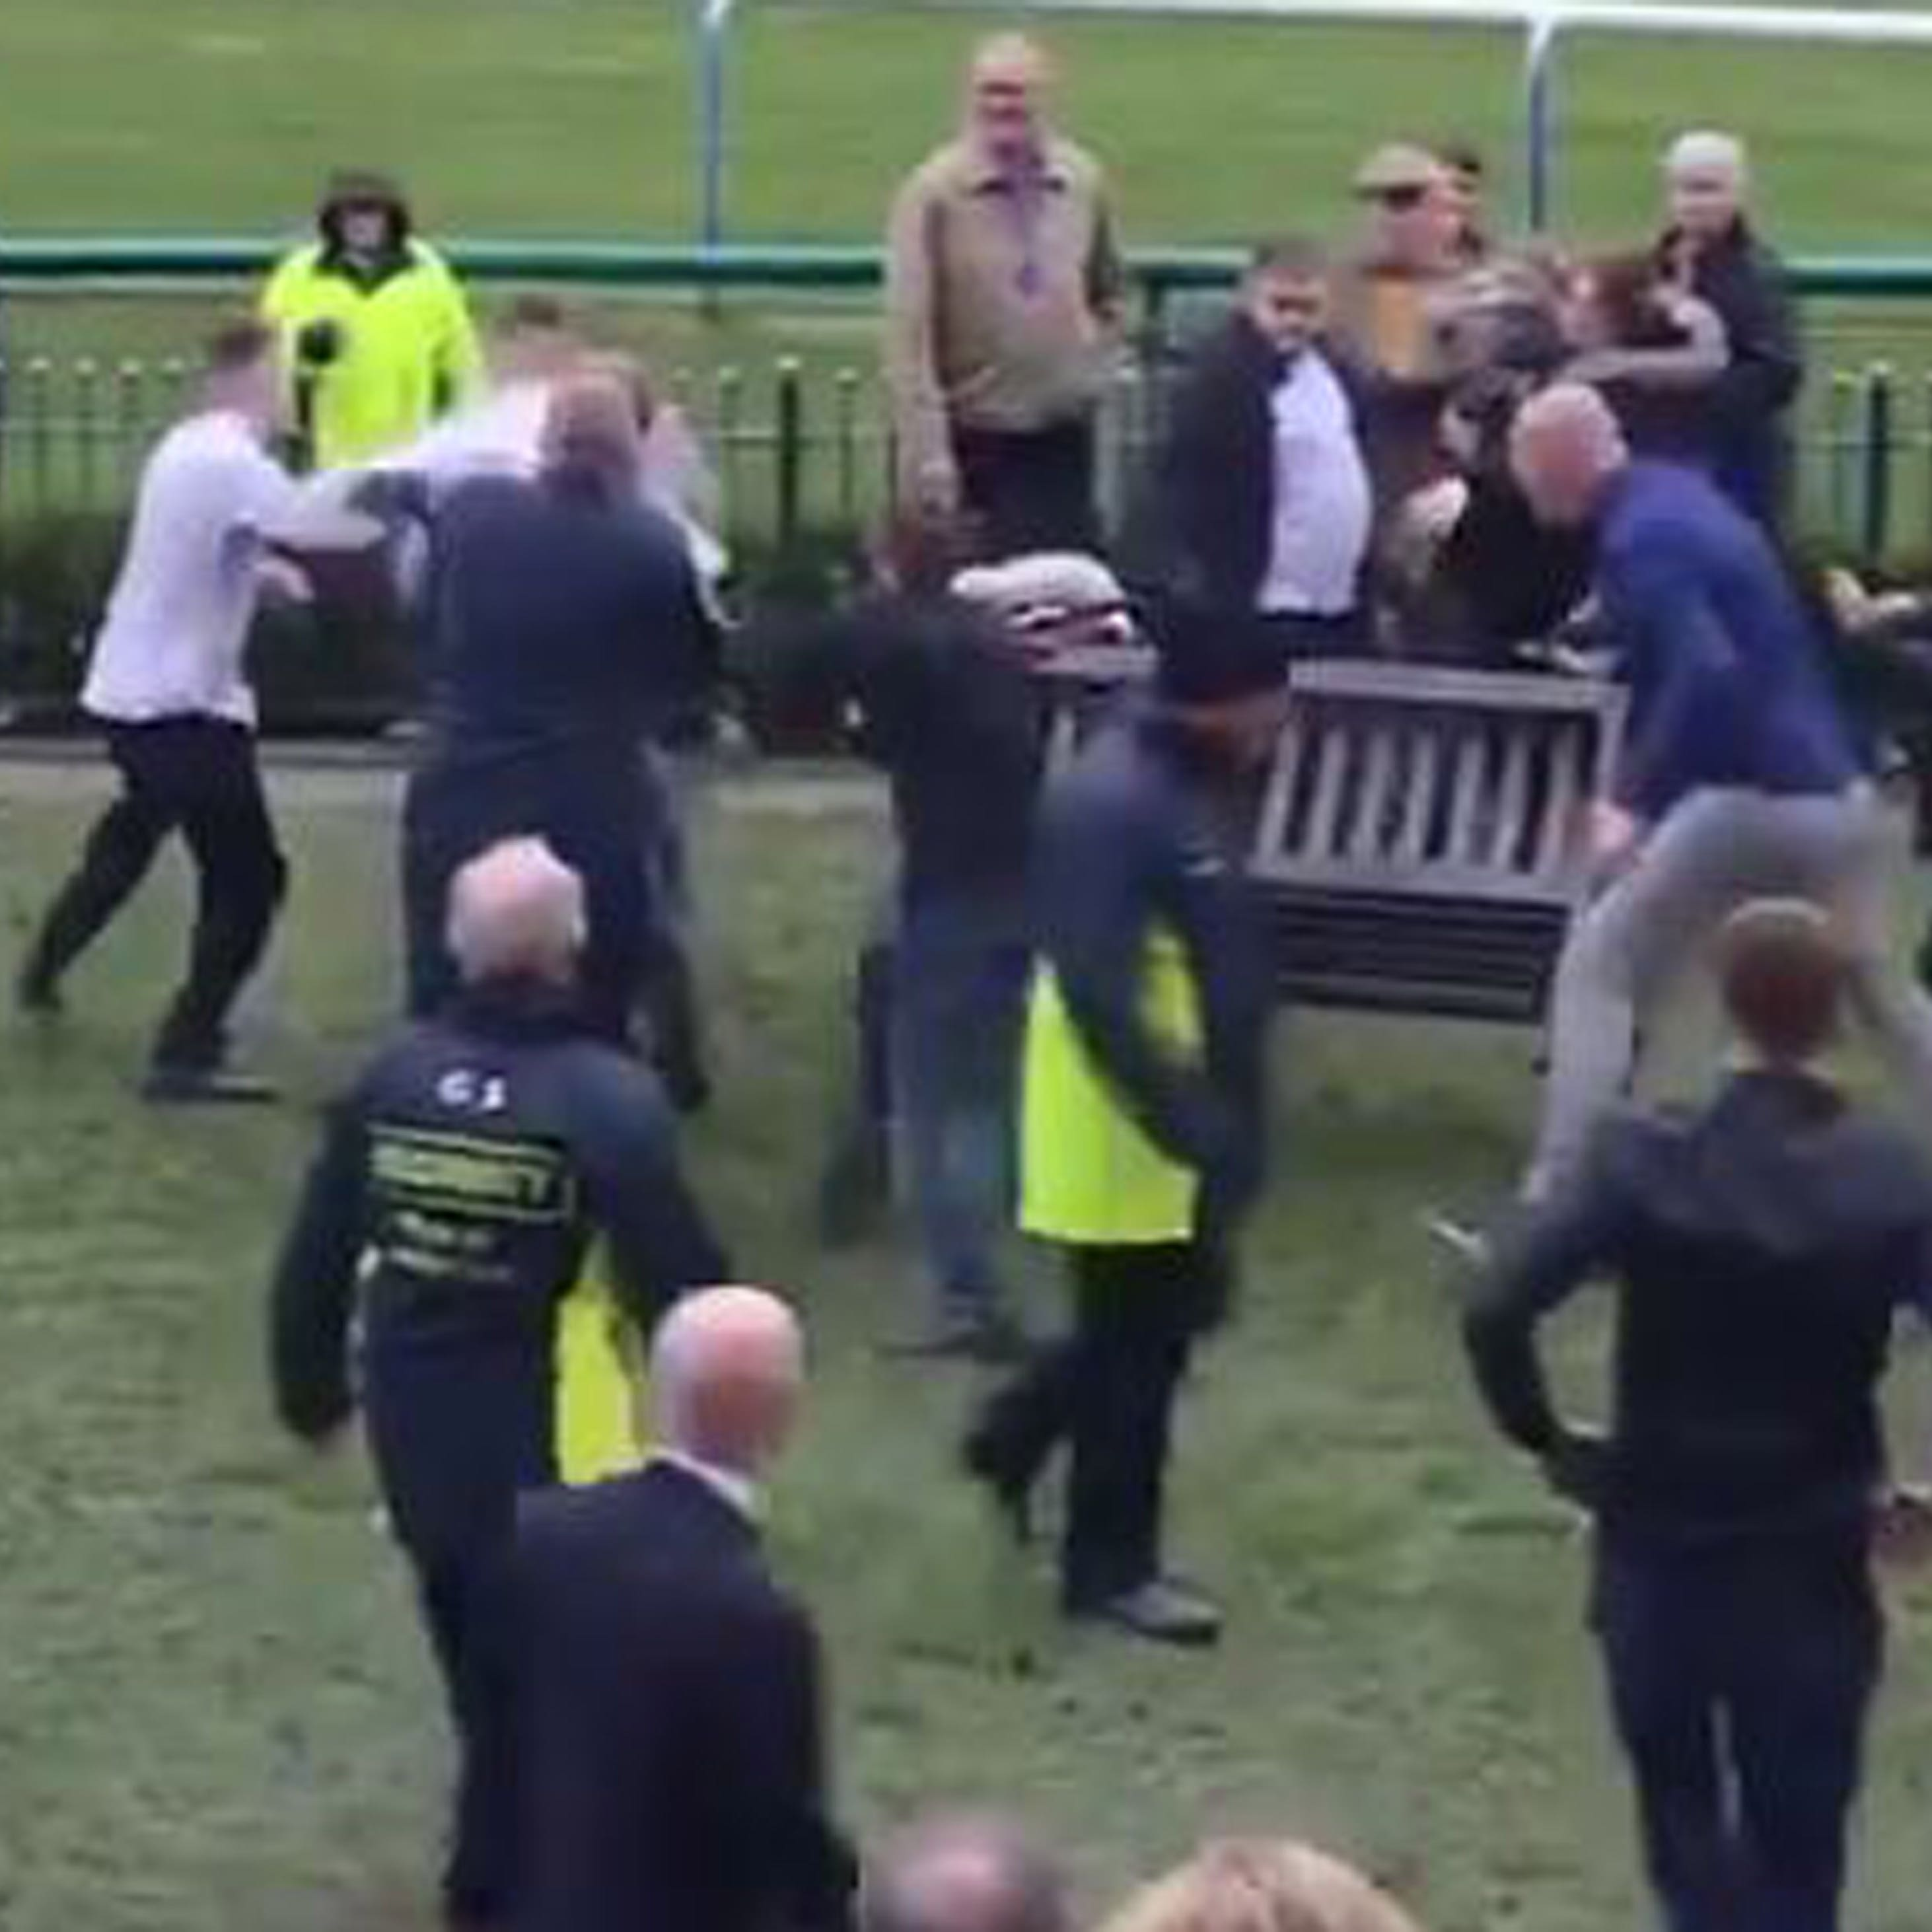 Innocent bystanders watch on as fight takes place at Haydock